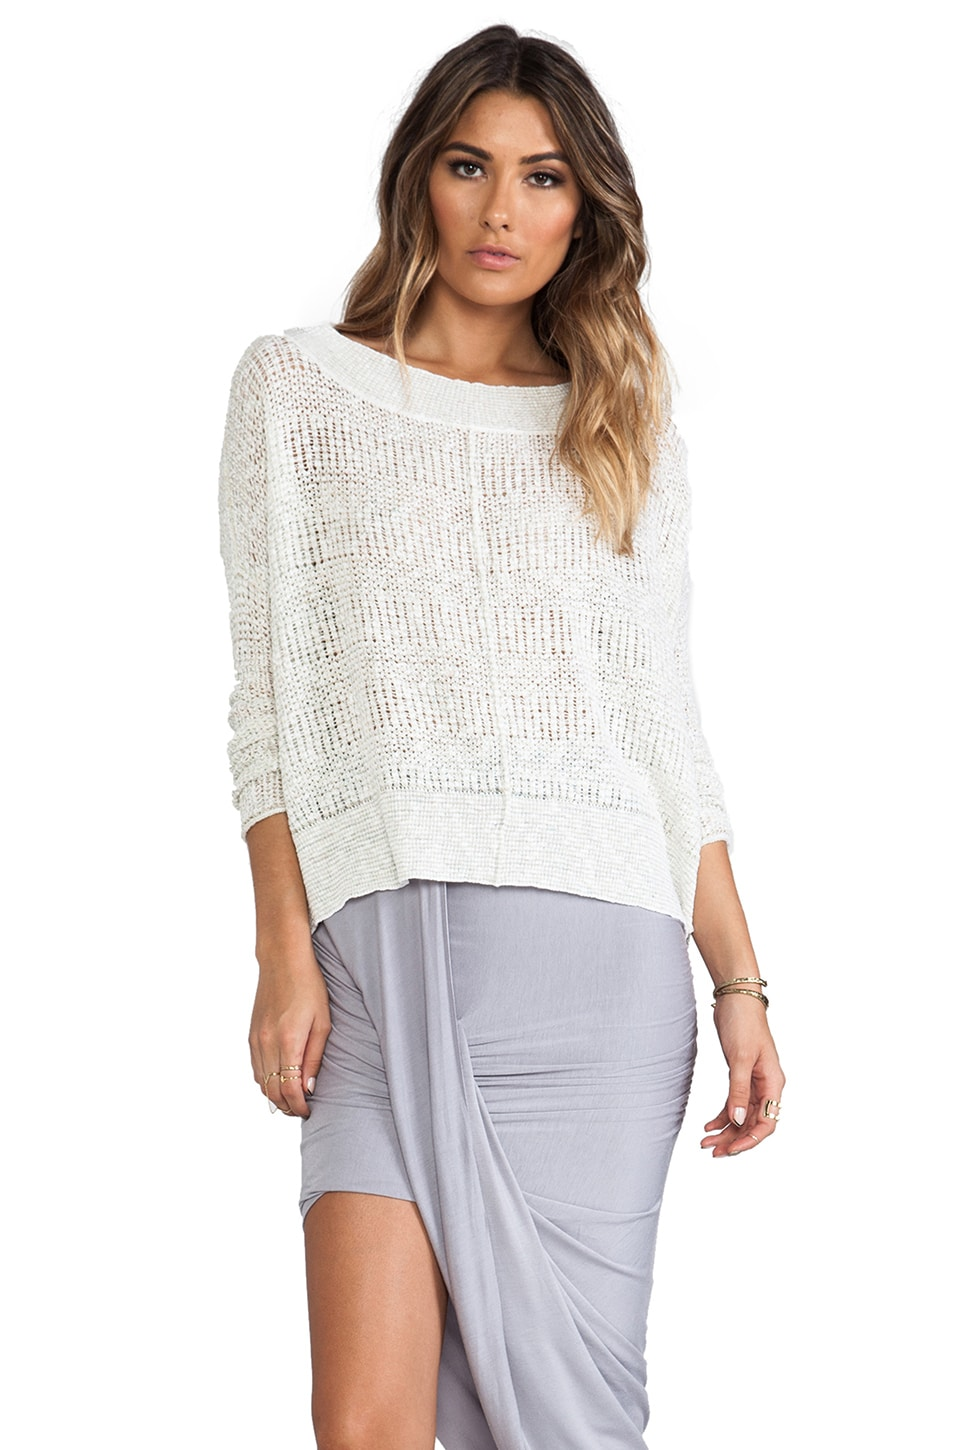 Free People These Days Fine Gauge Pullover in Ivory Combo